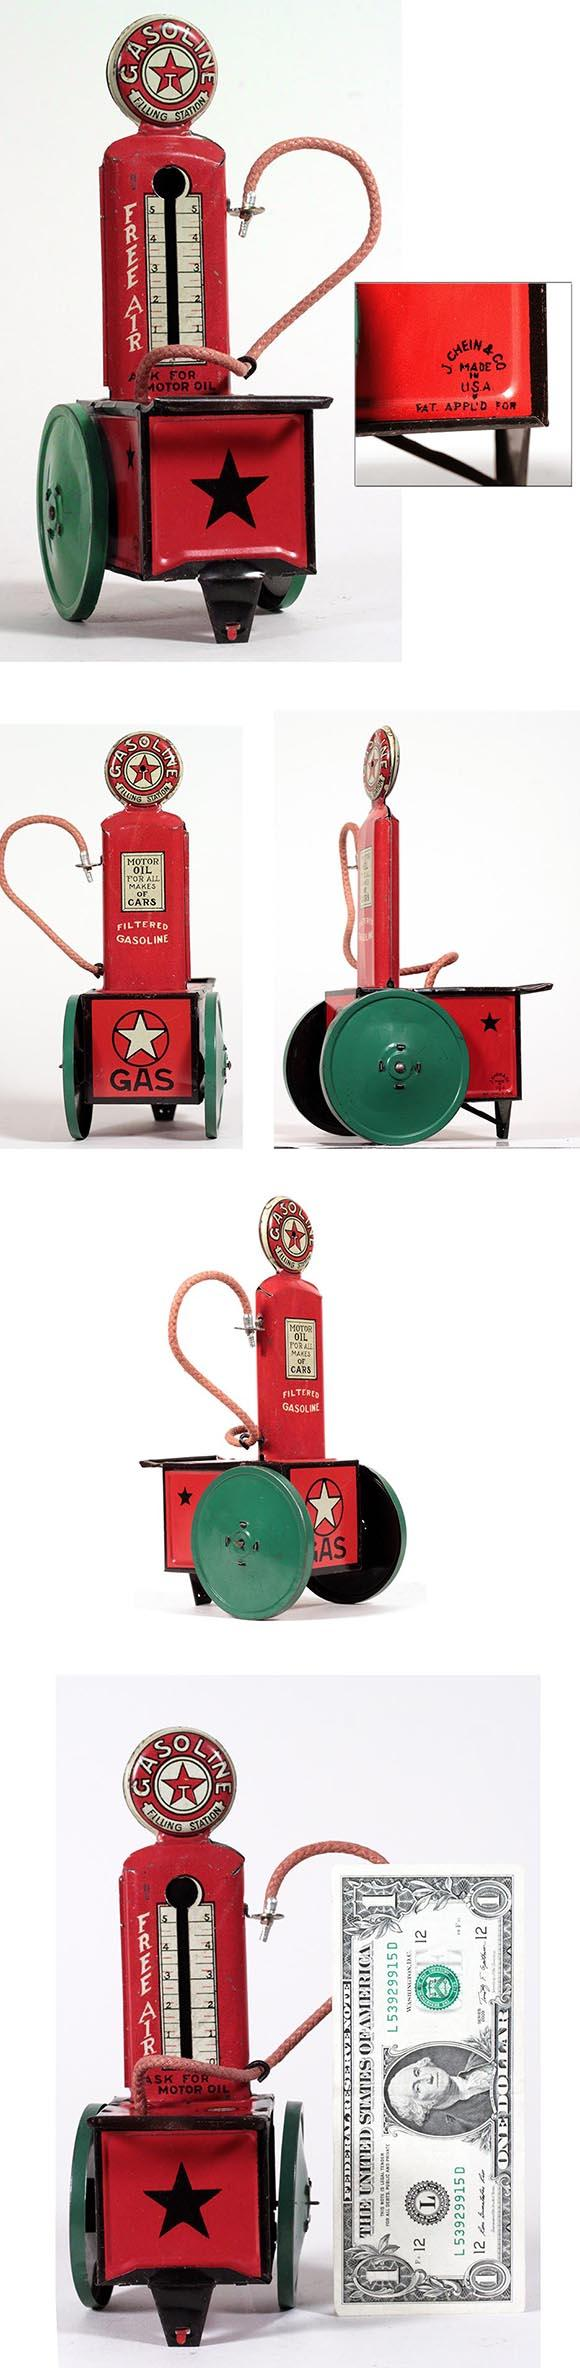 c.1928 Chein, Texaco Filling Station 'Free-Air' Pump Cart